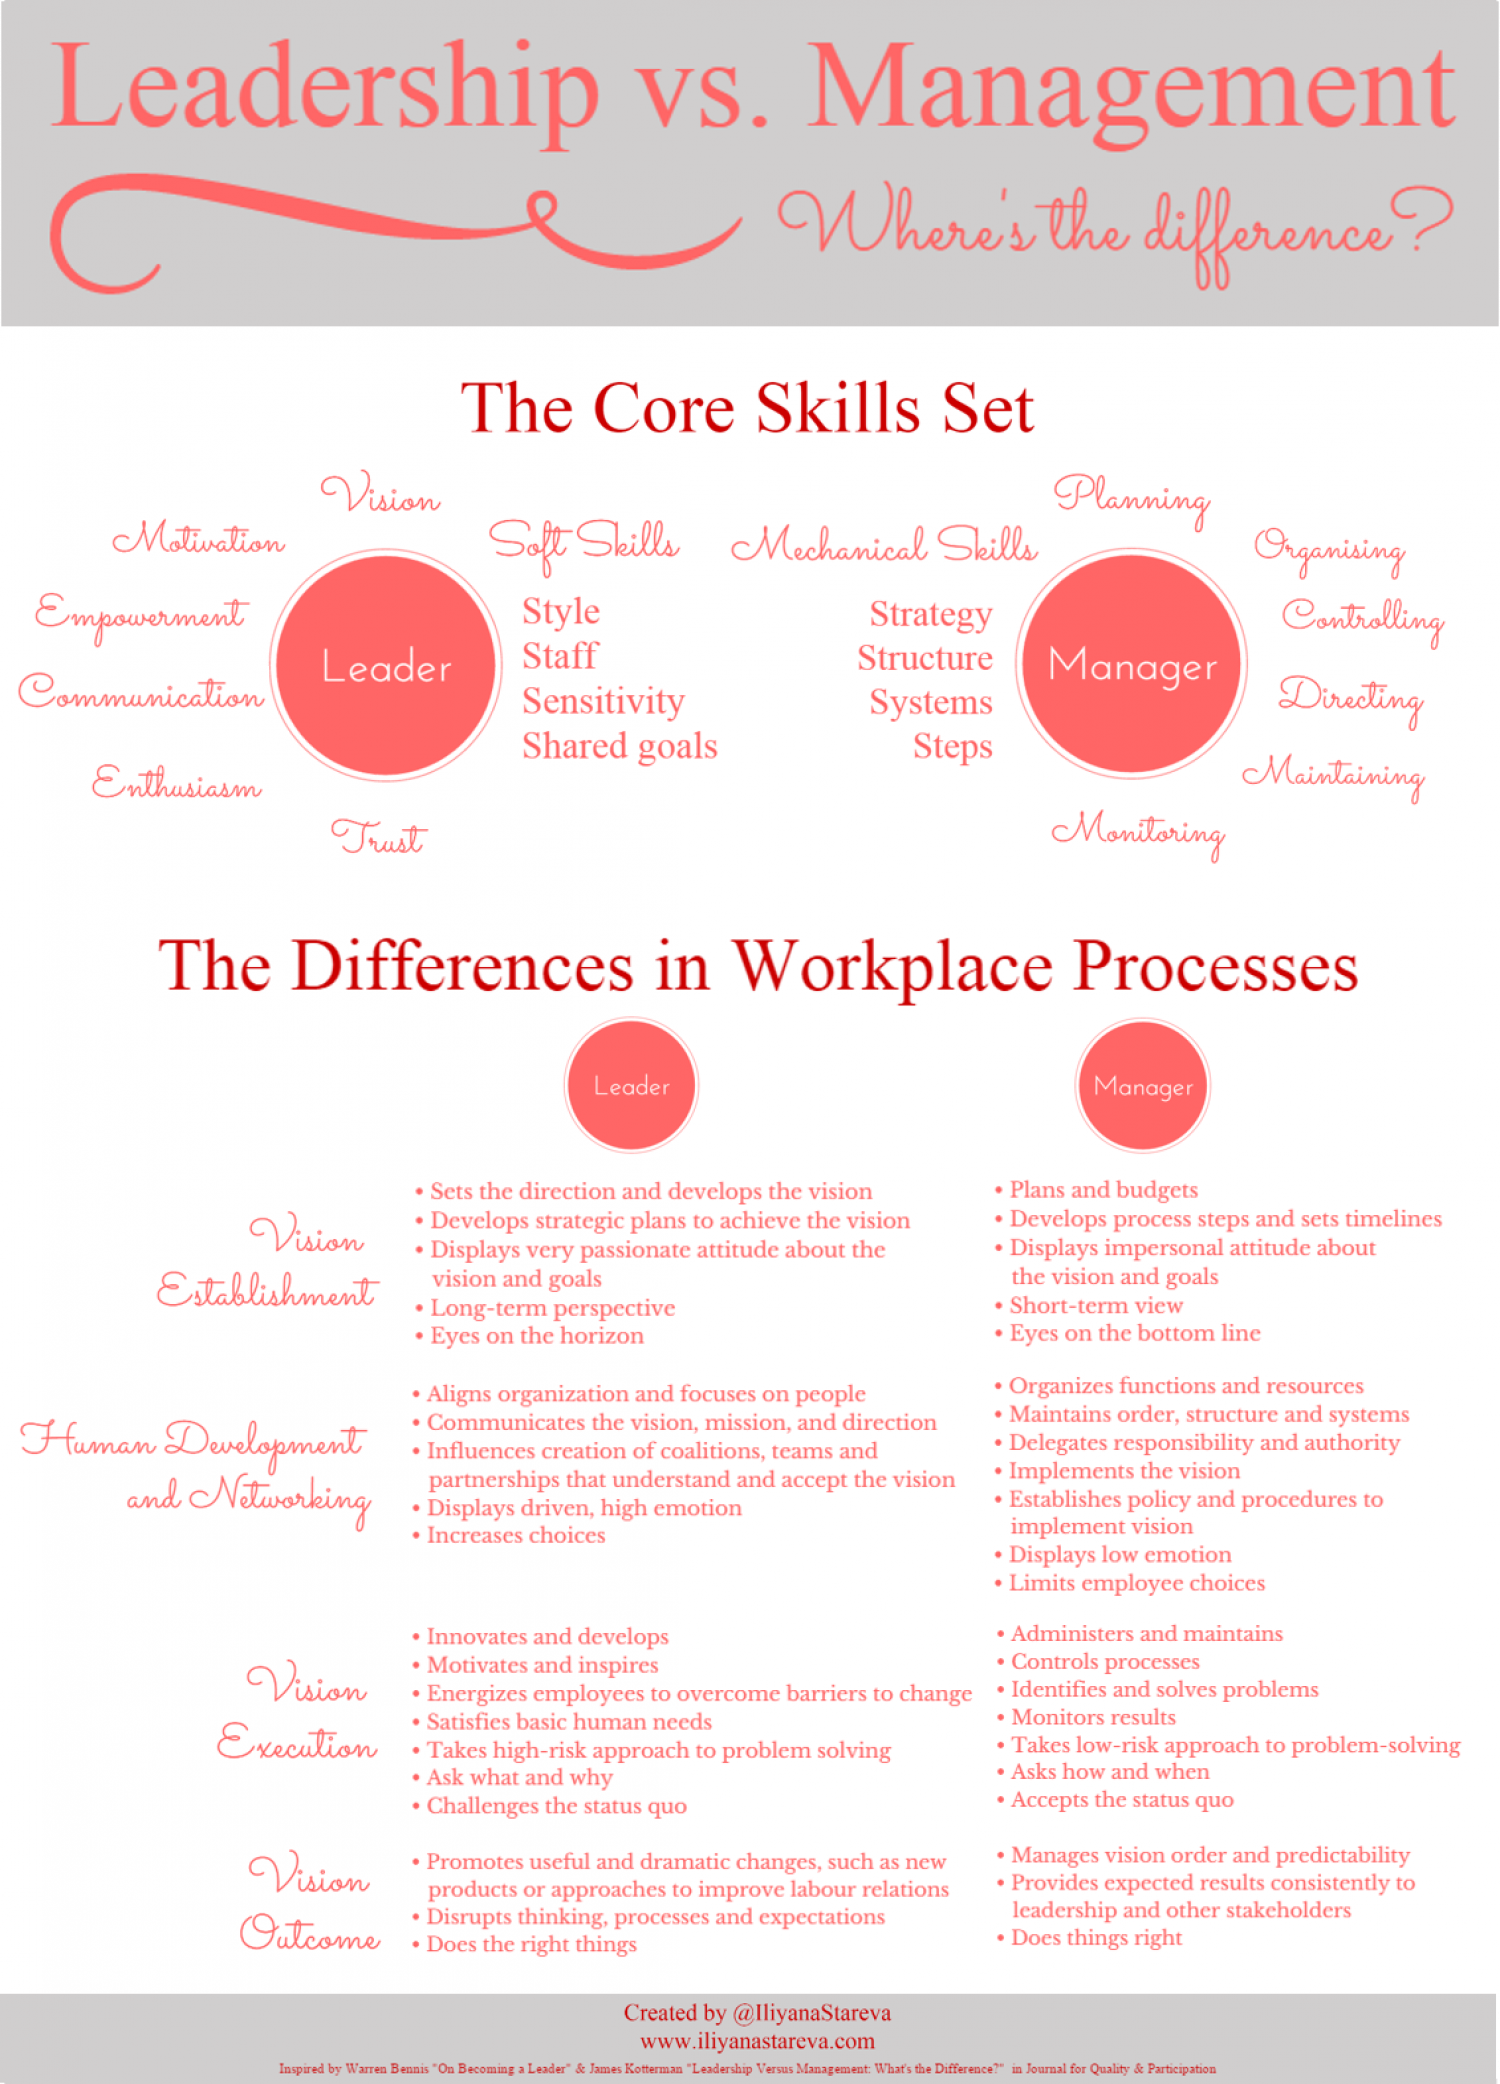 Leadership vs. Management [Infographic] Infographic